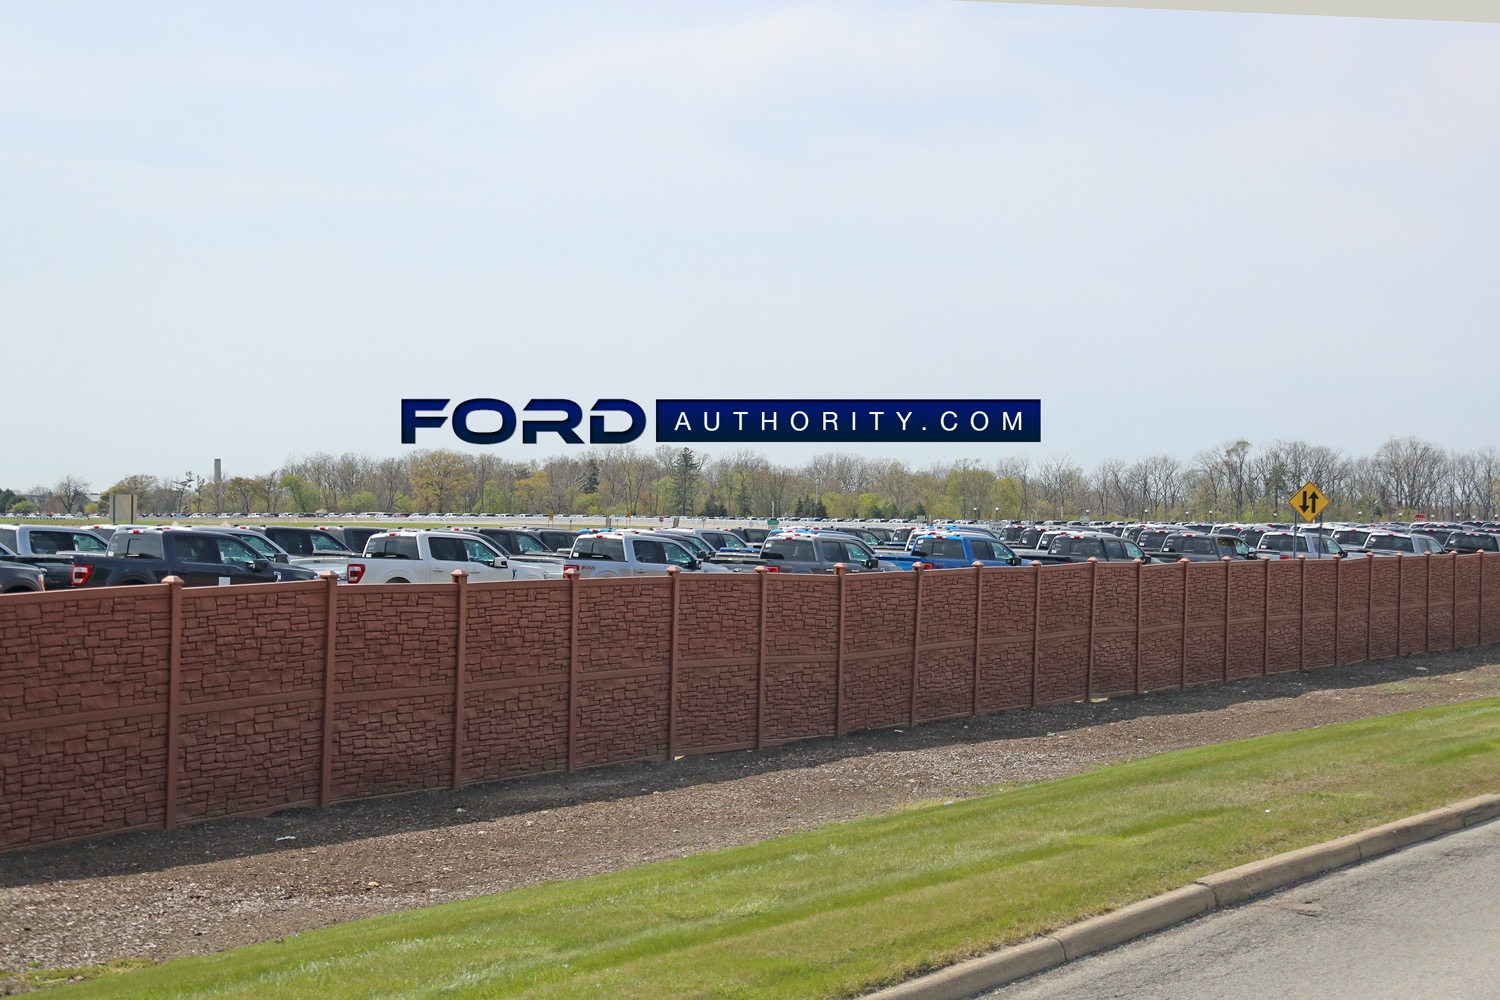 2021-Ford-F-150-Storage-Parked-Test-Track-Dearborn-Development-Center-Proving-Ground-April-202...jpg